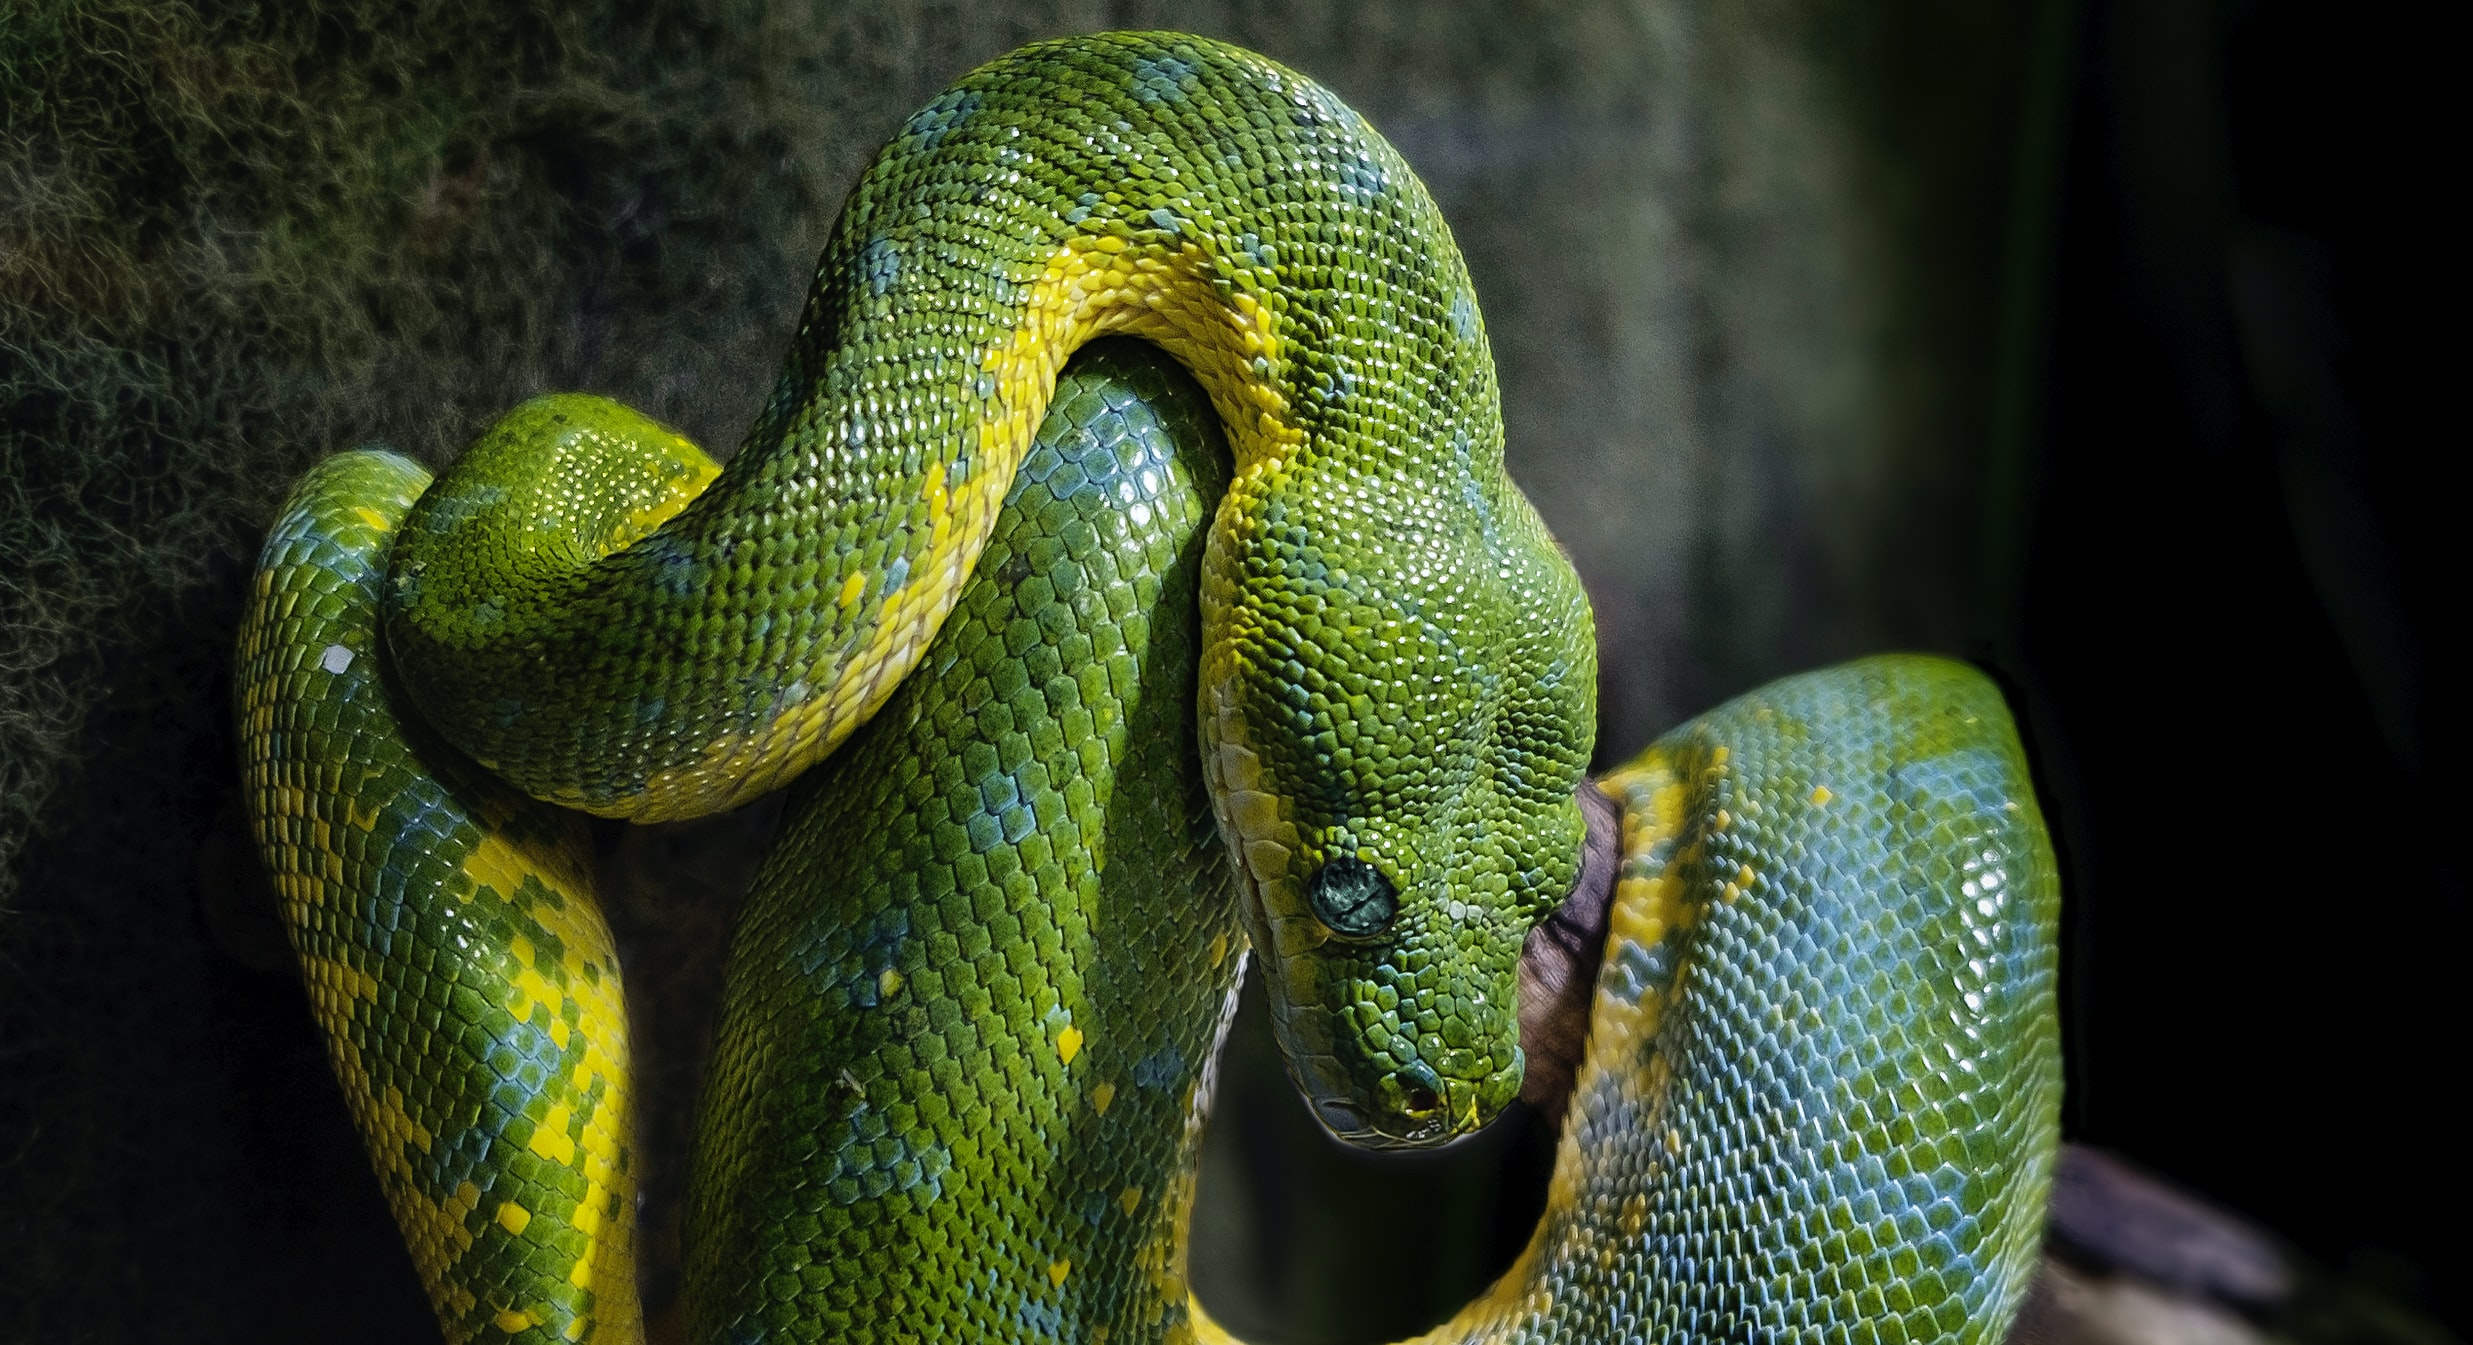 Snake with green scales coiled around a branch against a dark background